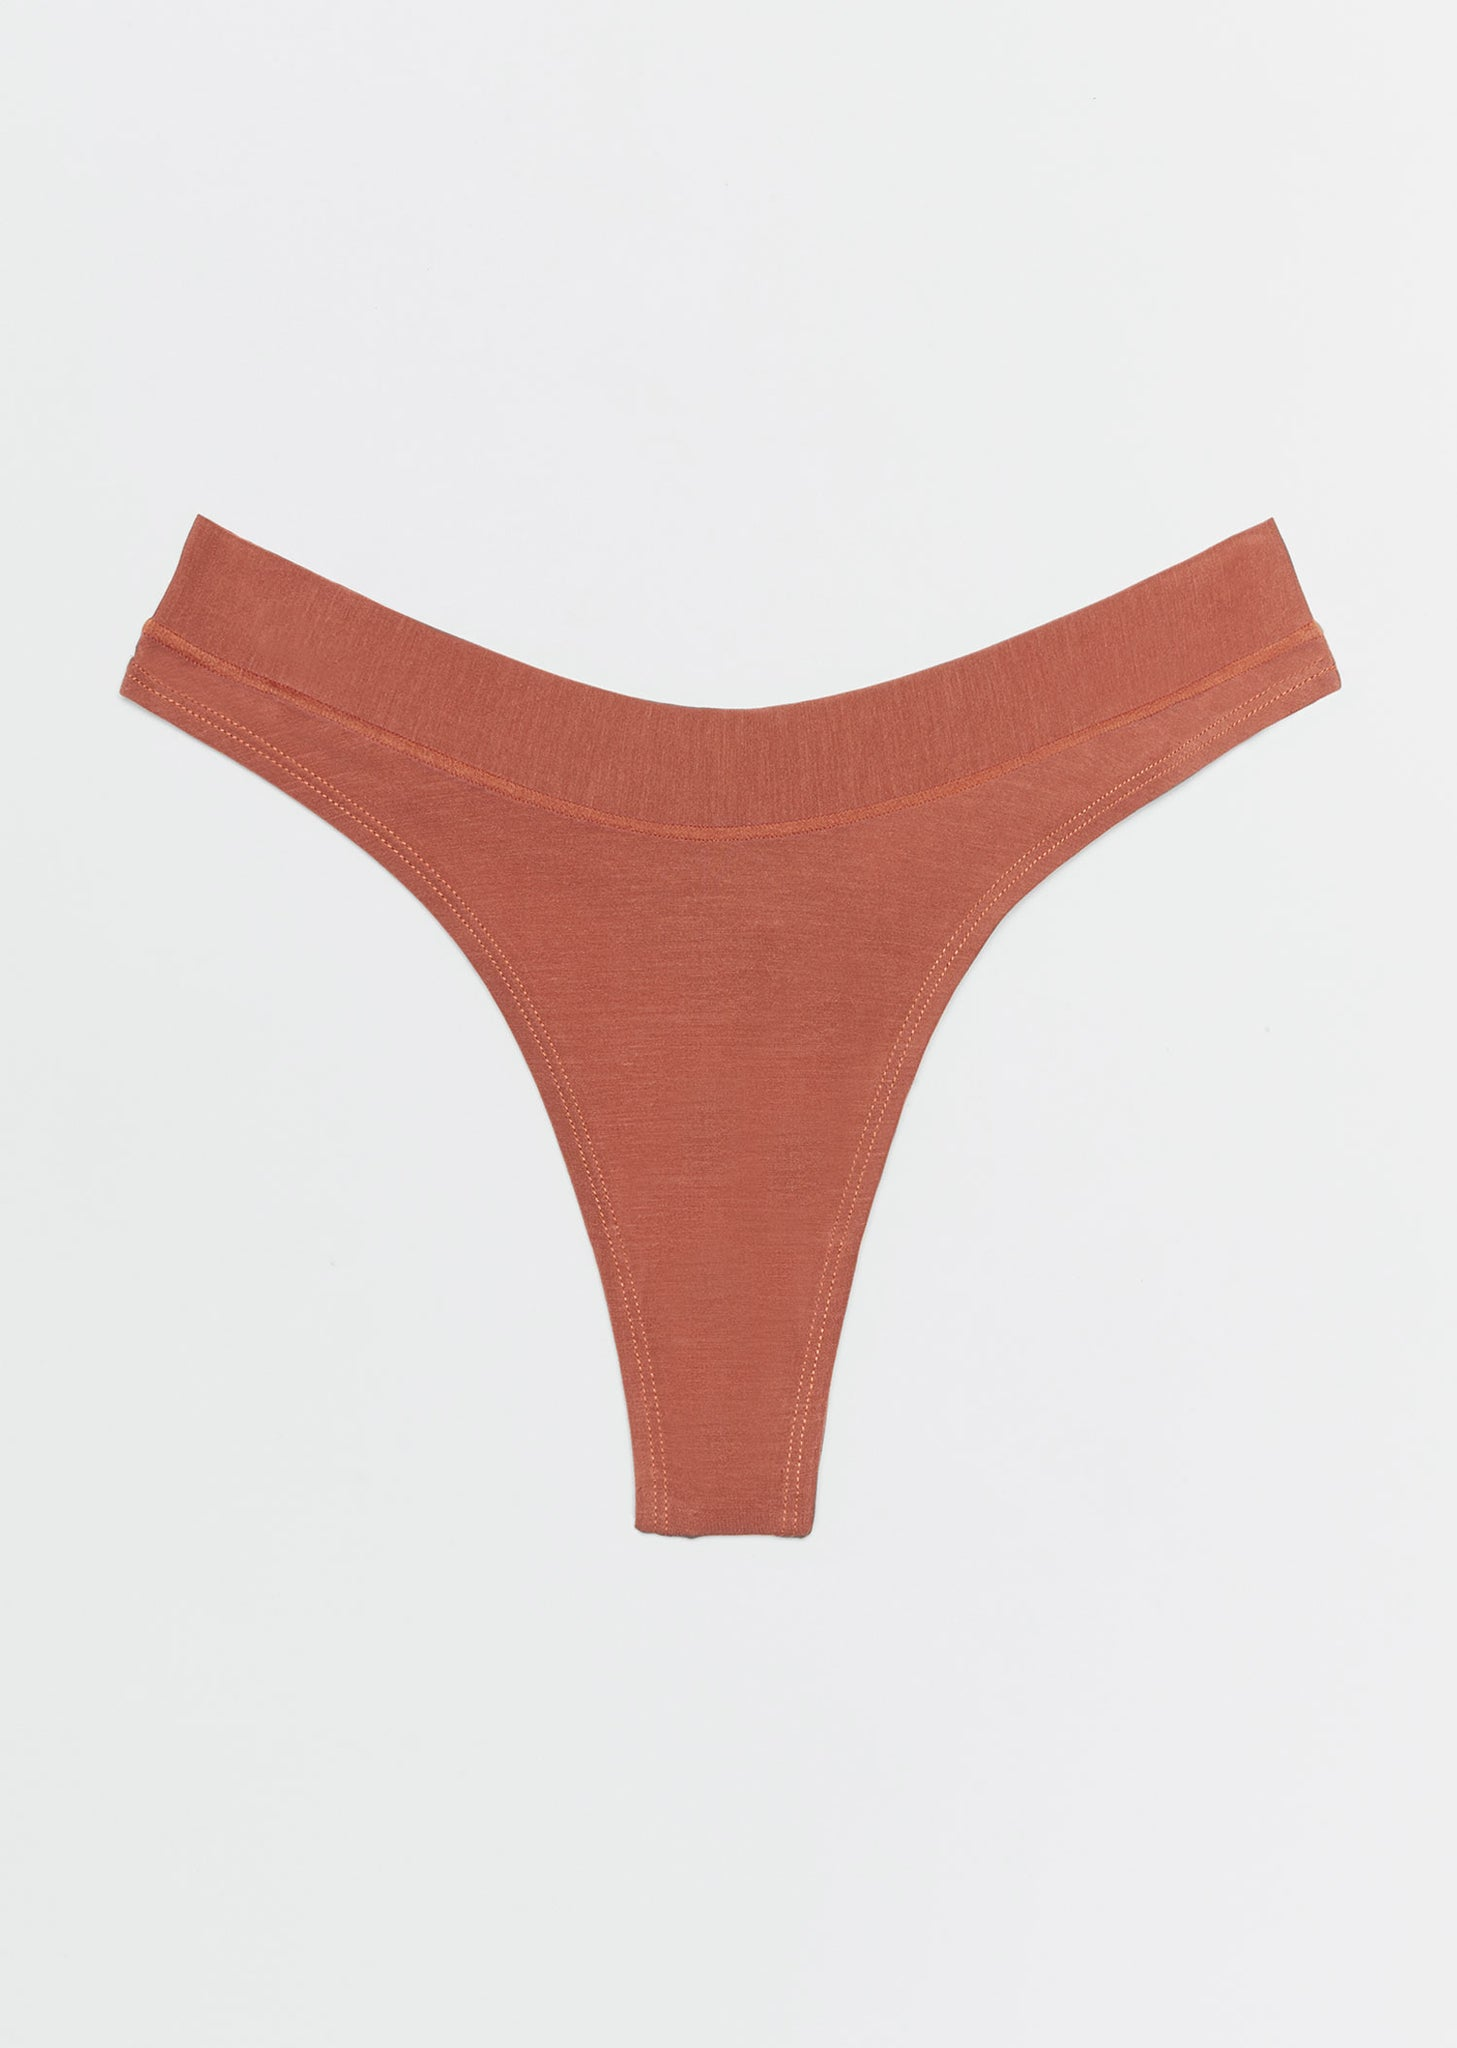 The Thong - CUUP